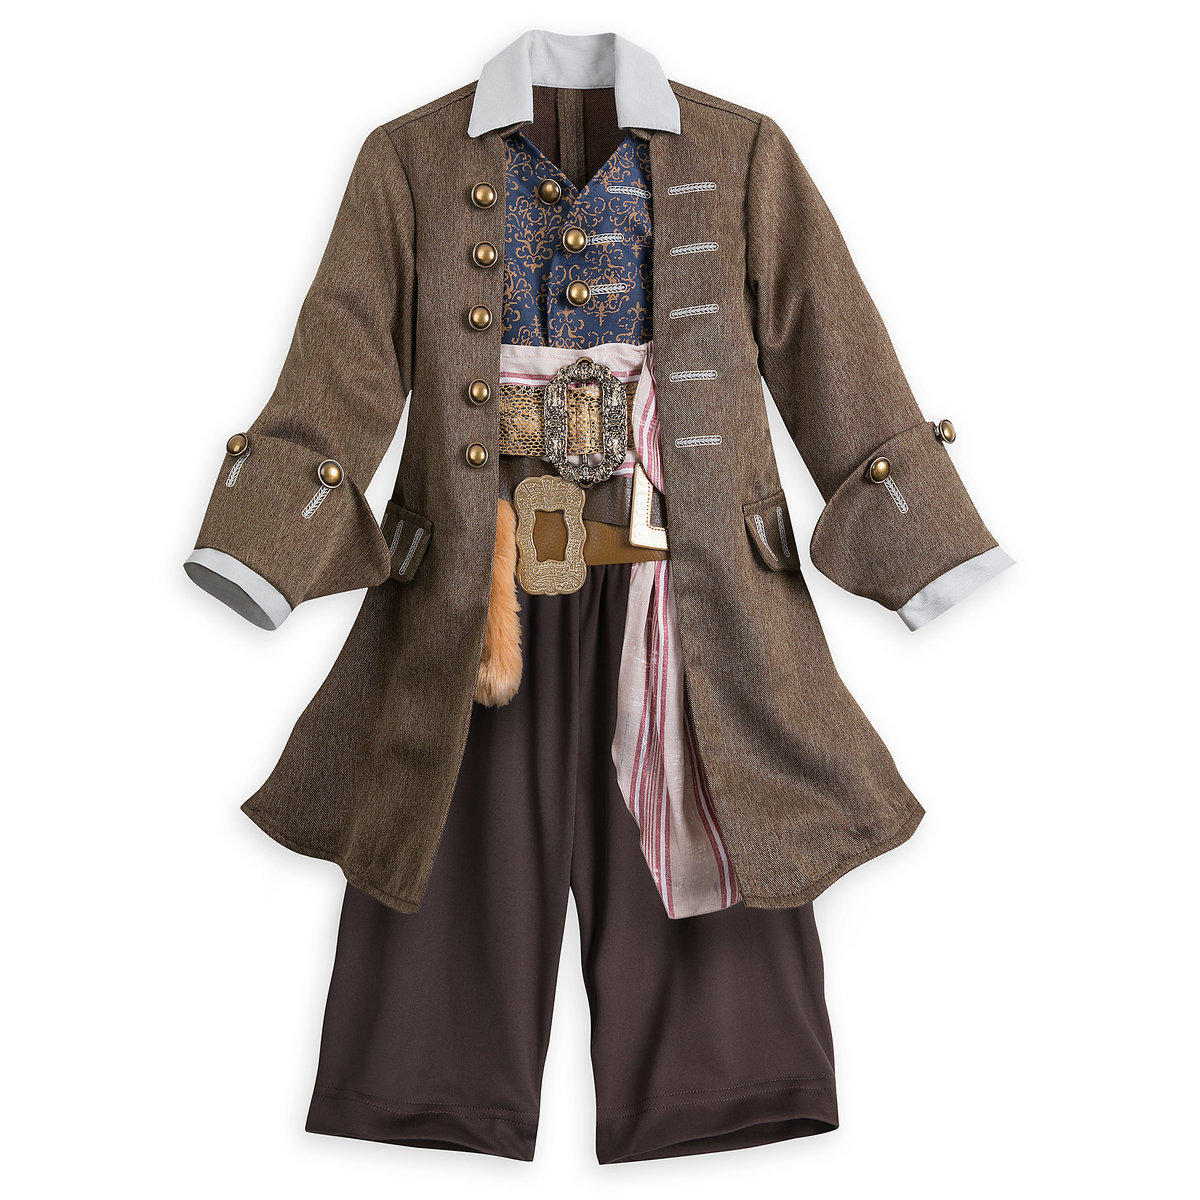 d6caf51fe4 Product Image of Captain Jack Sparrow Costume for Kids # 1